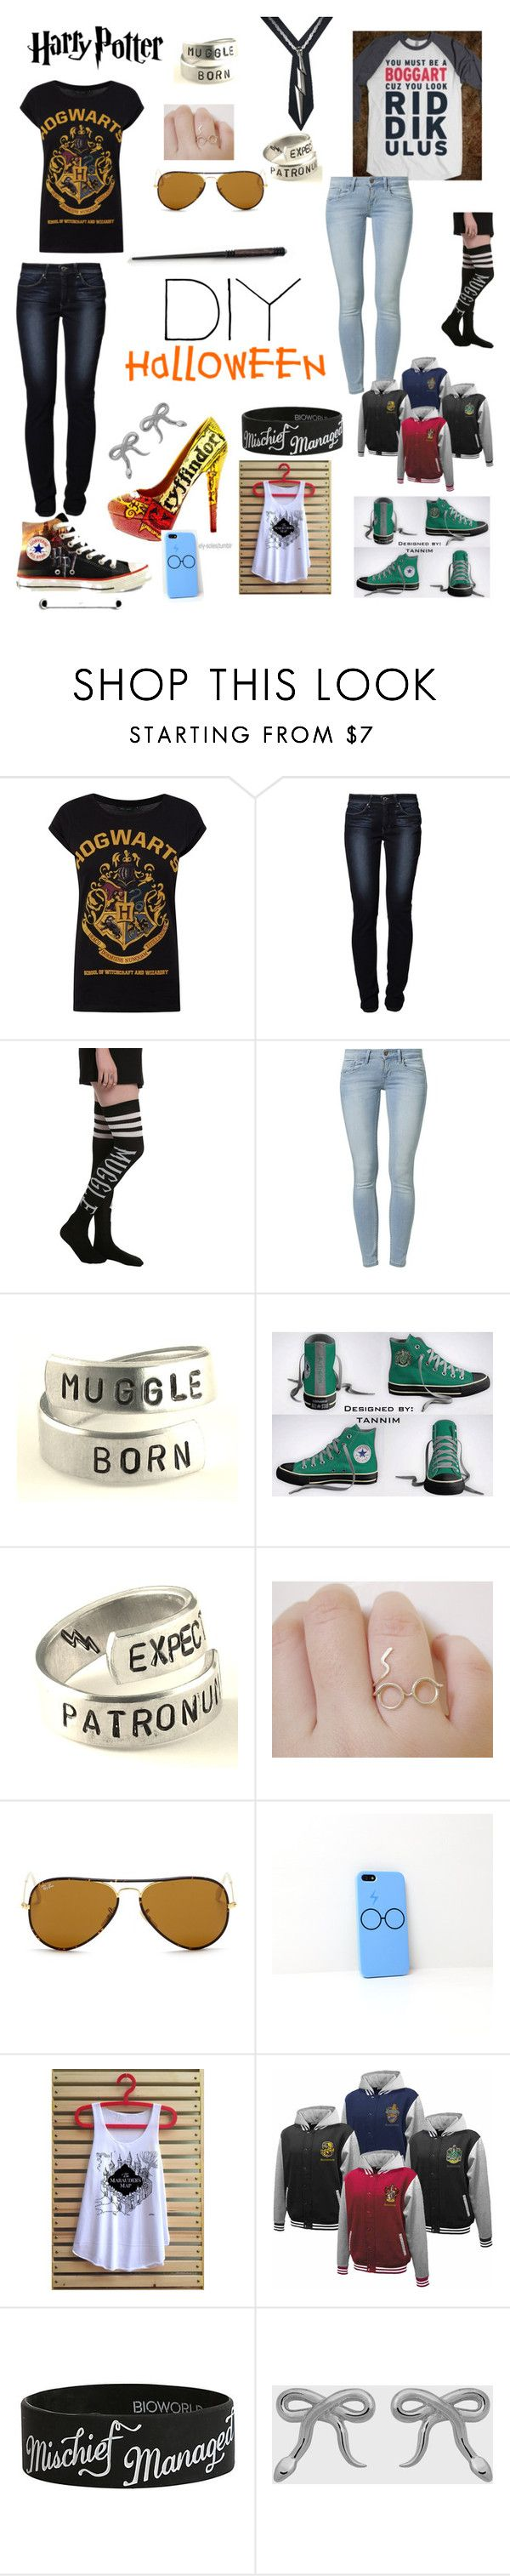 """""""DIY Harry Potter Costume"""" by mormonandinoit ❤ liked on Polyvore featuring Levi's, Calvin Klein Jeans, Converse, Ray-Ban, Samsung, Meadowlark, DIY, harrypotter and halloweencostume"""